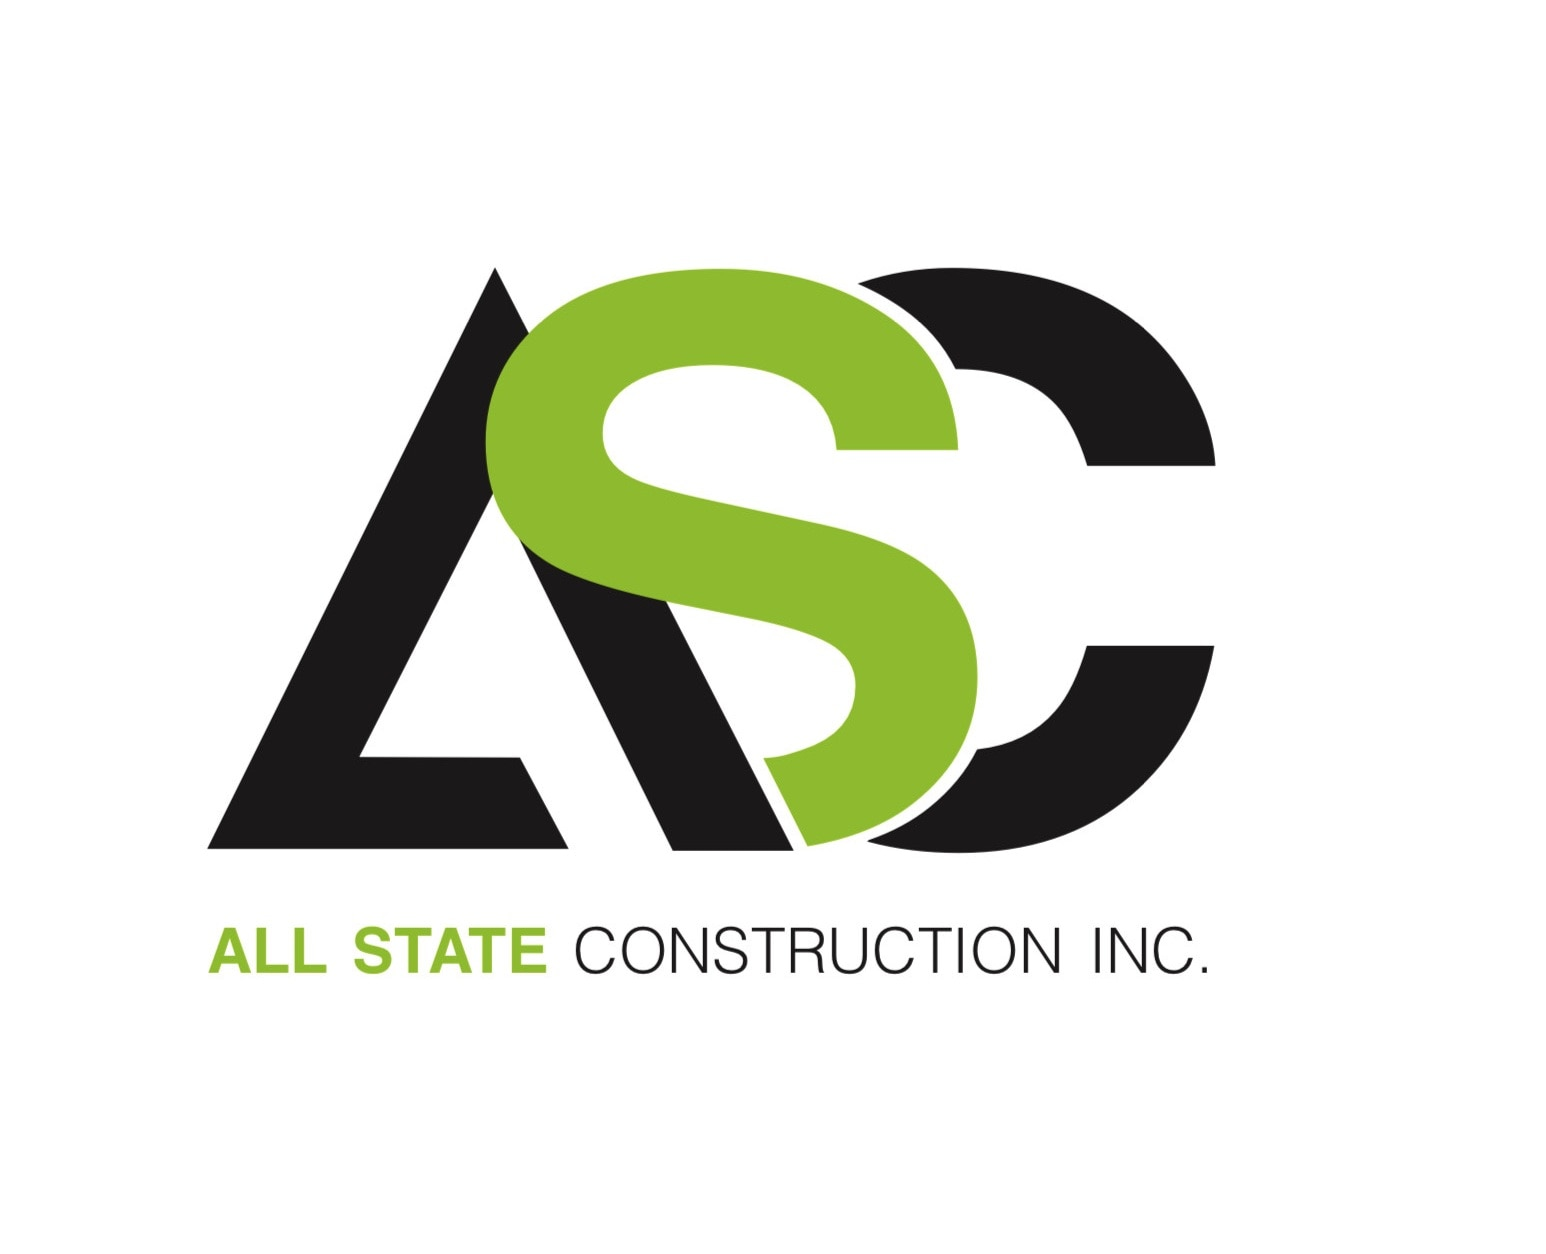 All State Construction Inc. logo